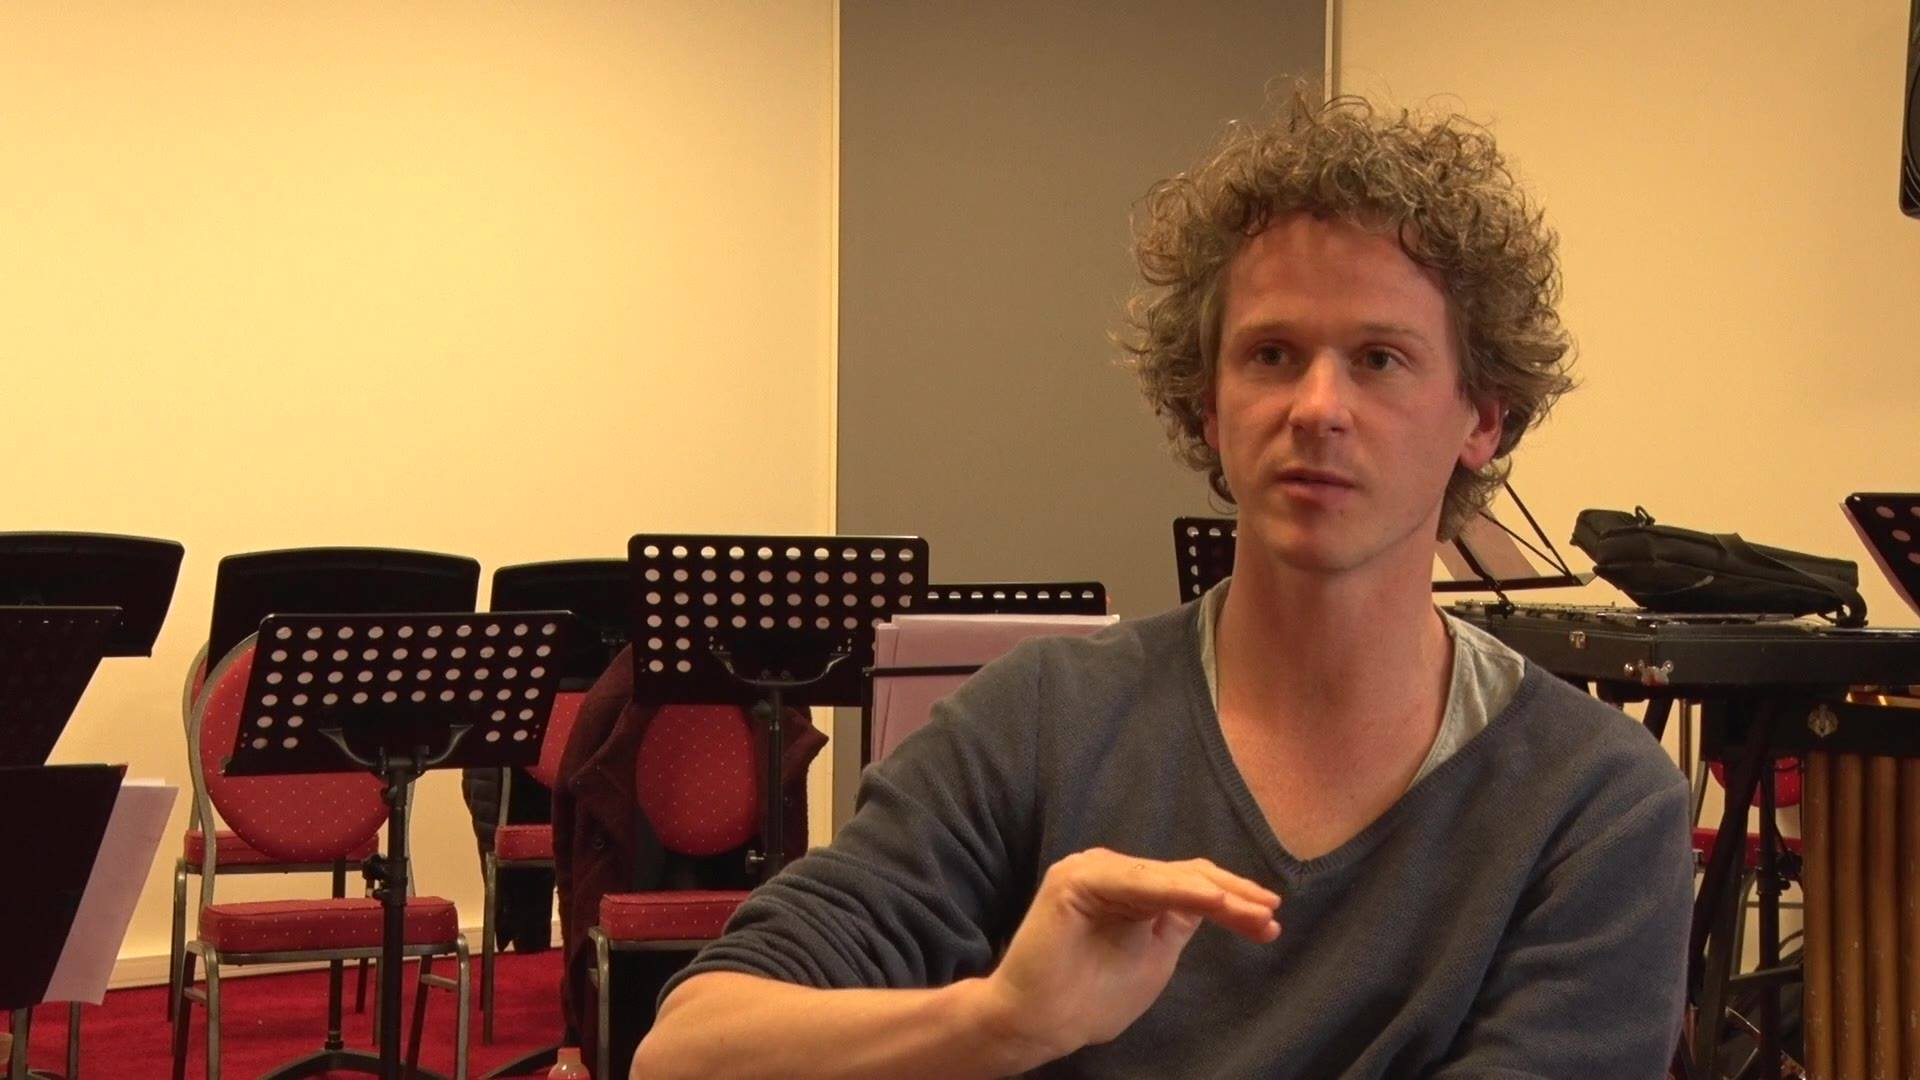 Interview with Peter Vigh, creation of TOTALITER ALITER